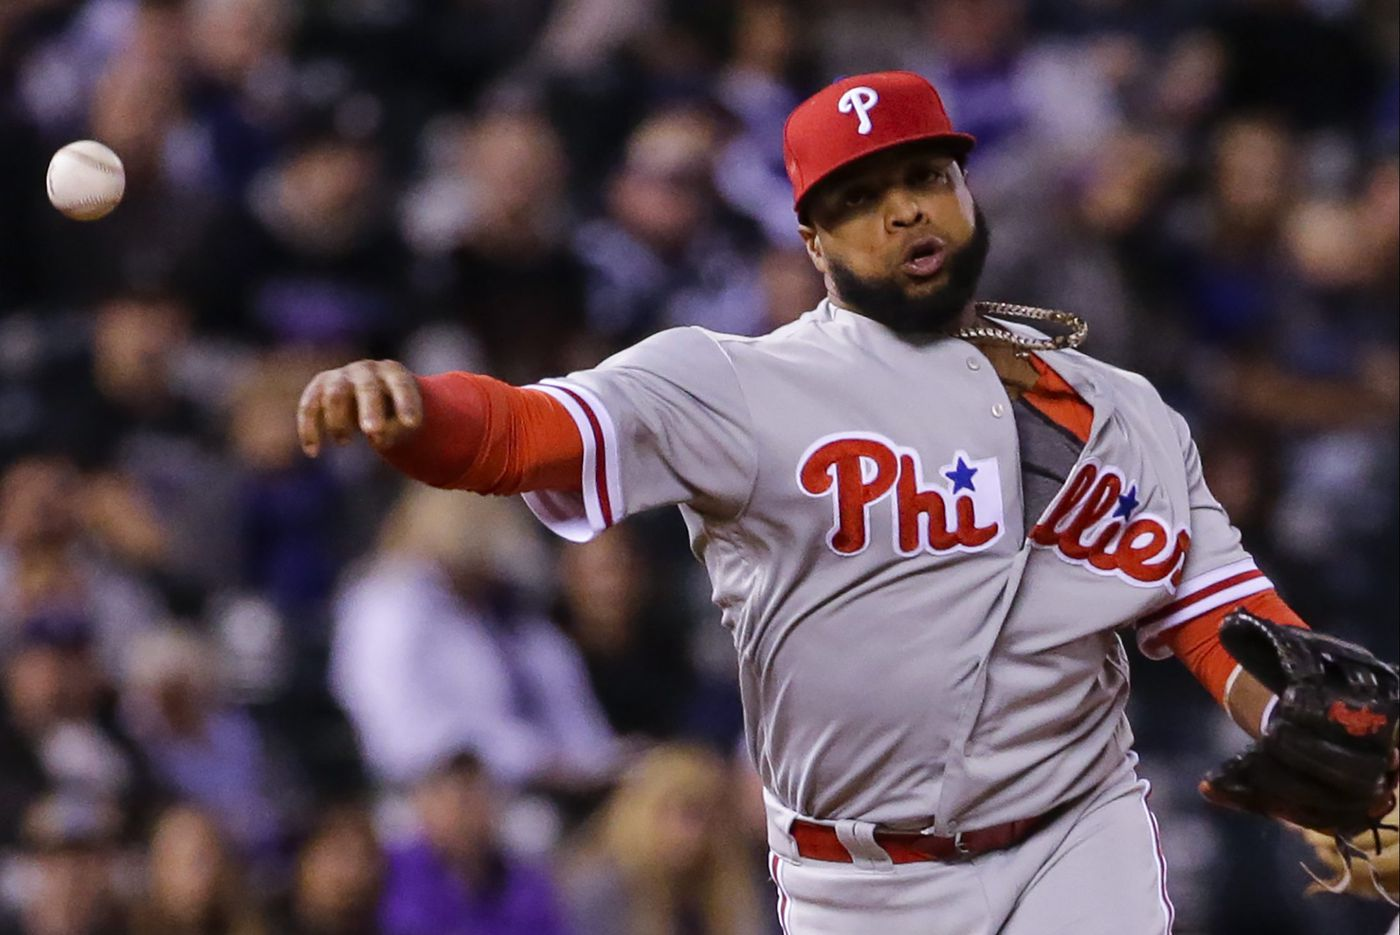 Phillies seem headed for another losing season | Extra Innings